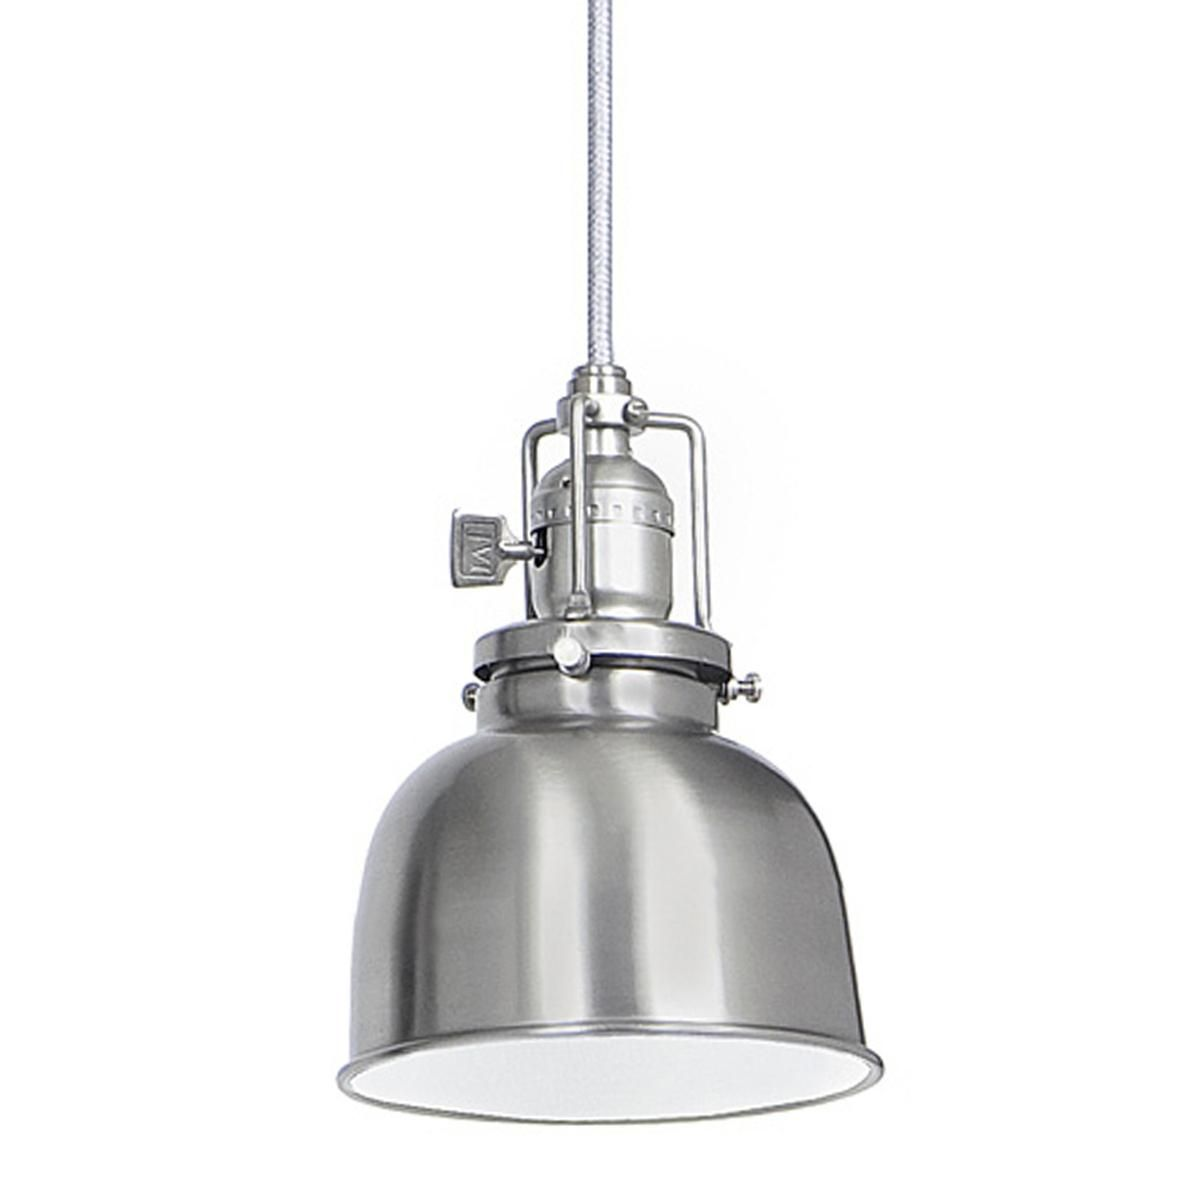 Dome Shade Industrial Pendant | Industrial, Pendants and Kitchens